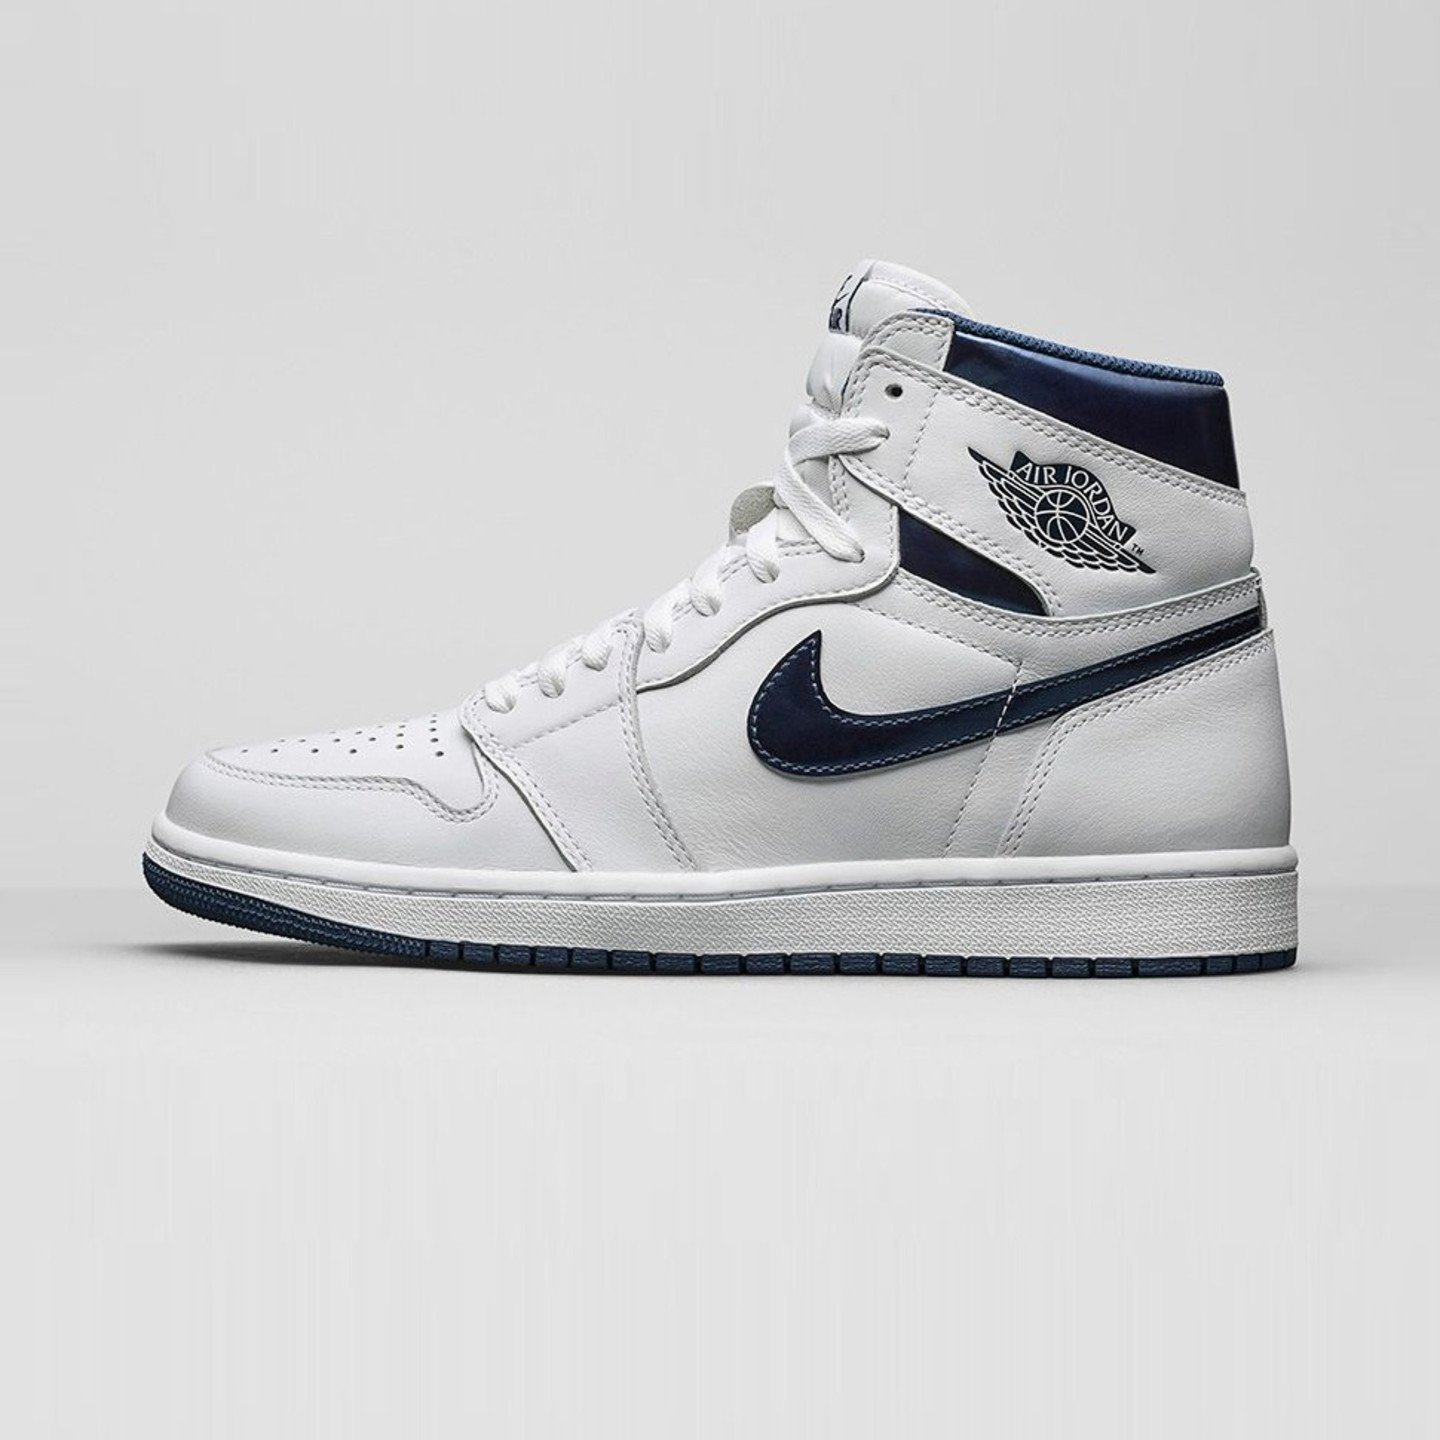 Jordan Air Jordan 1 Retro High OG 'Metallic Navy' White / Midnight Navy 555088-106-42